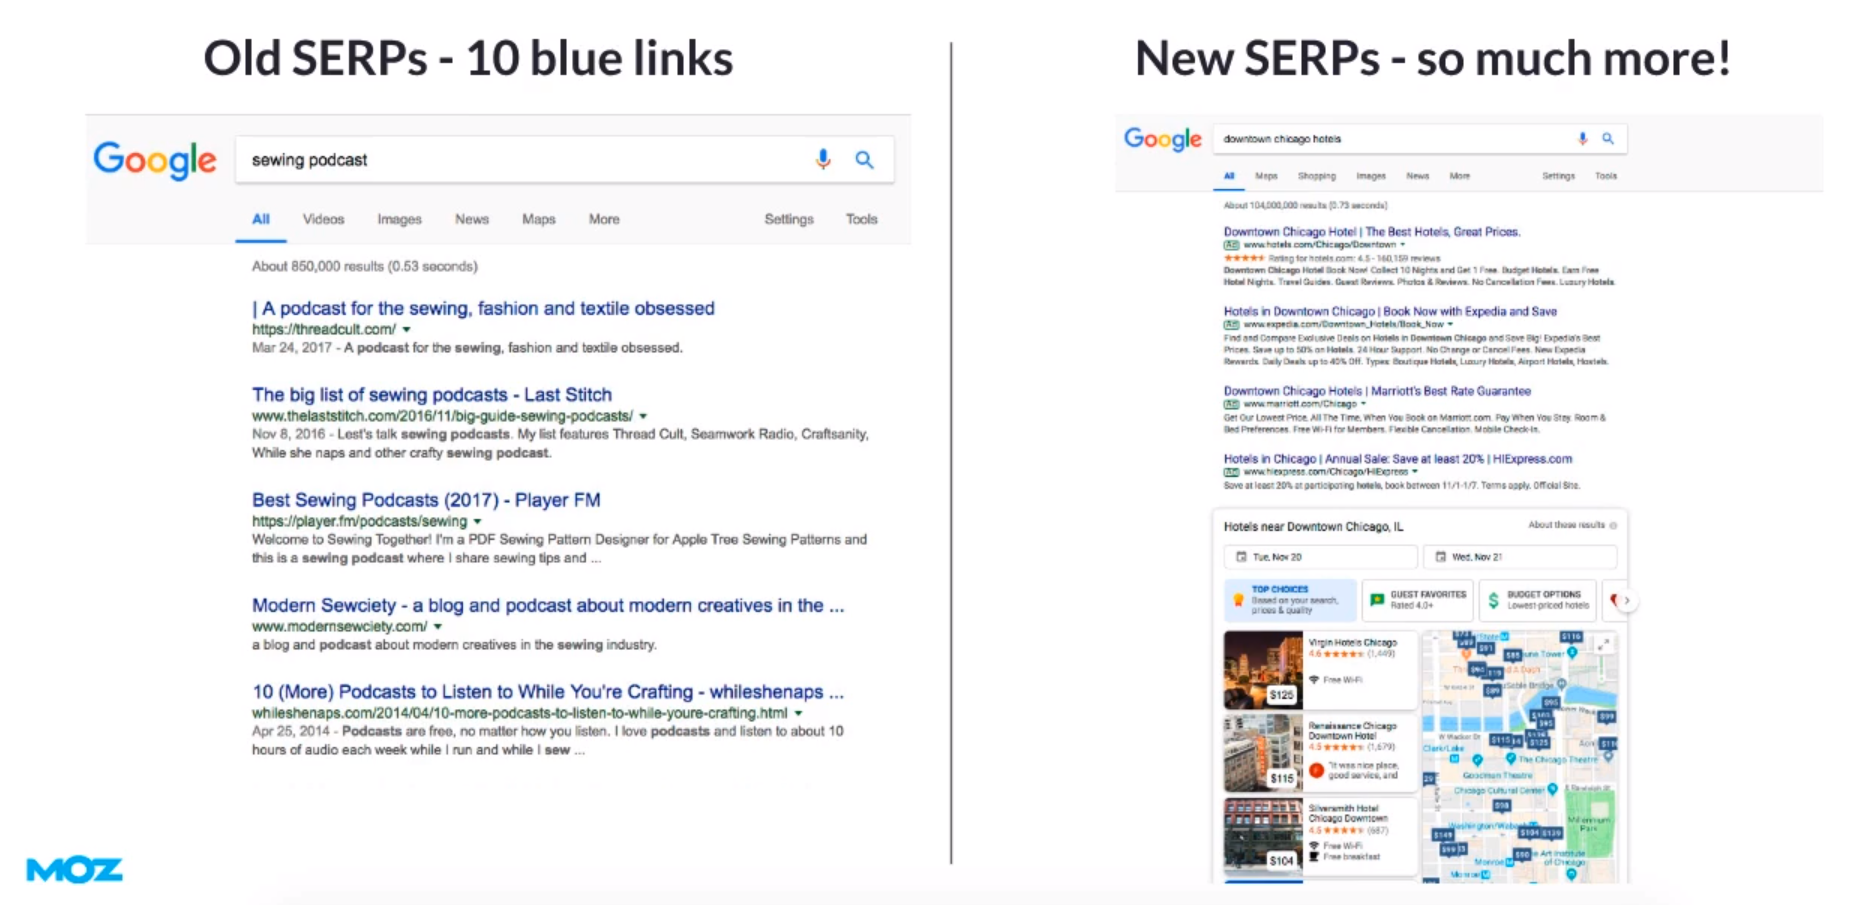 SERP comparison: then and now